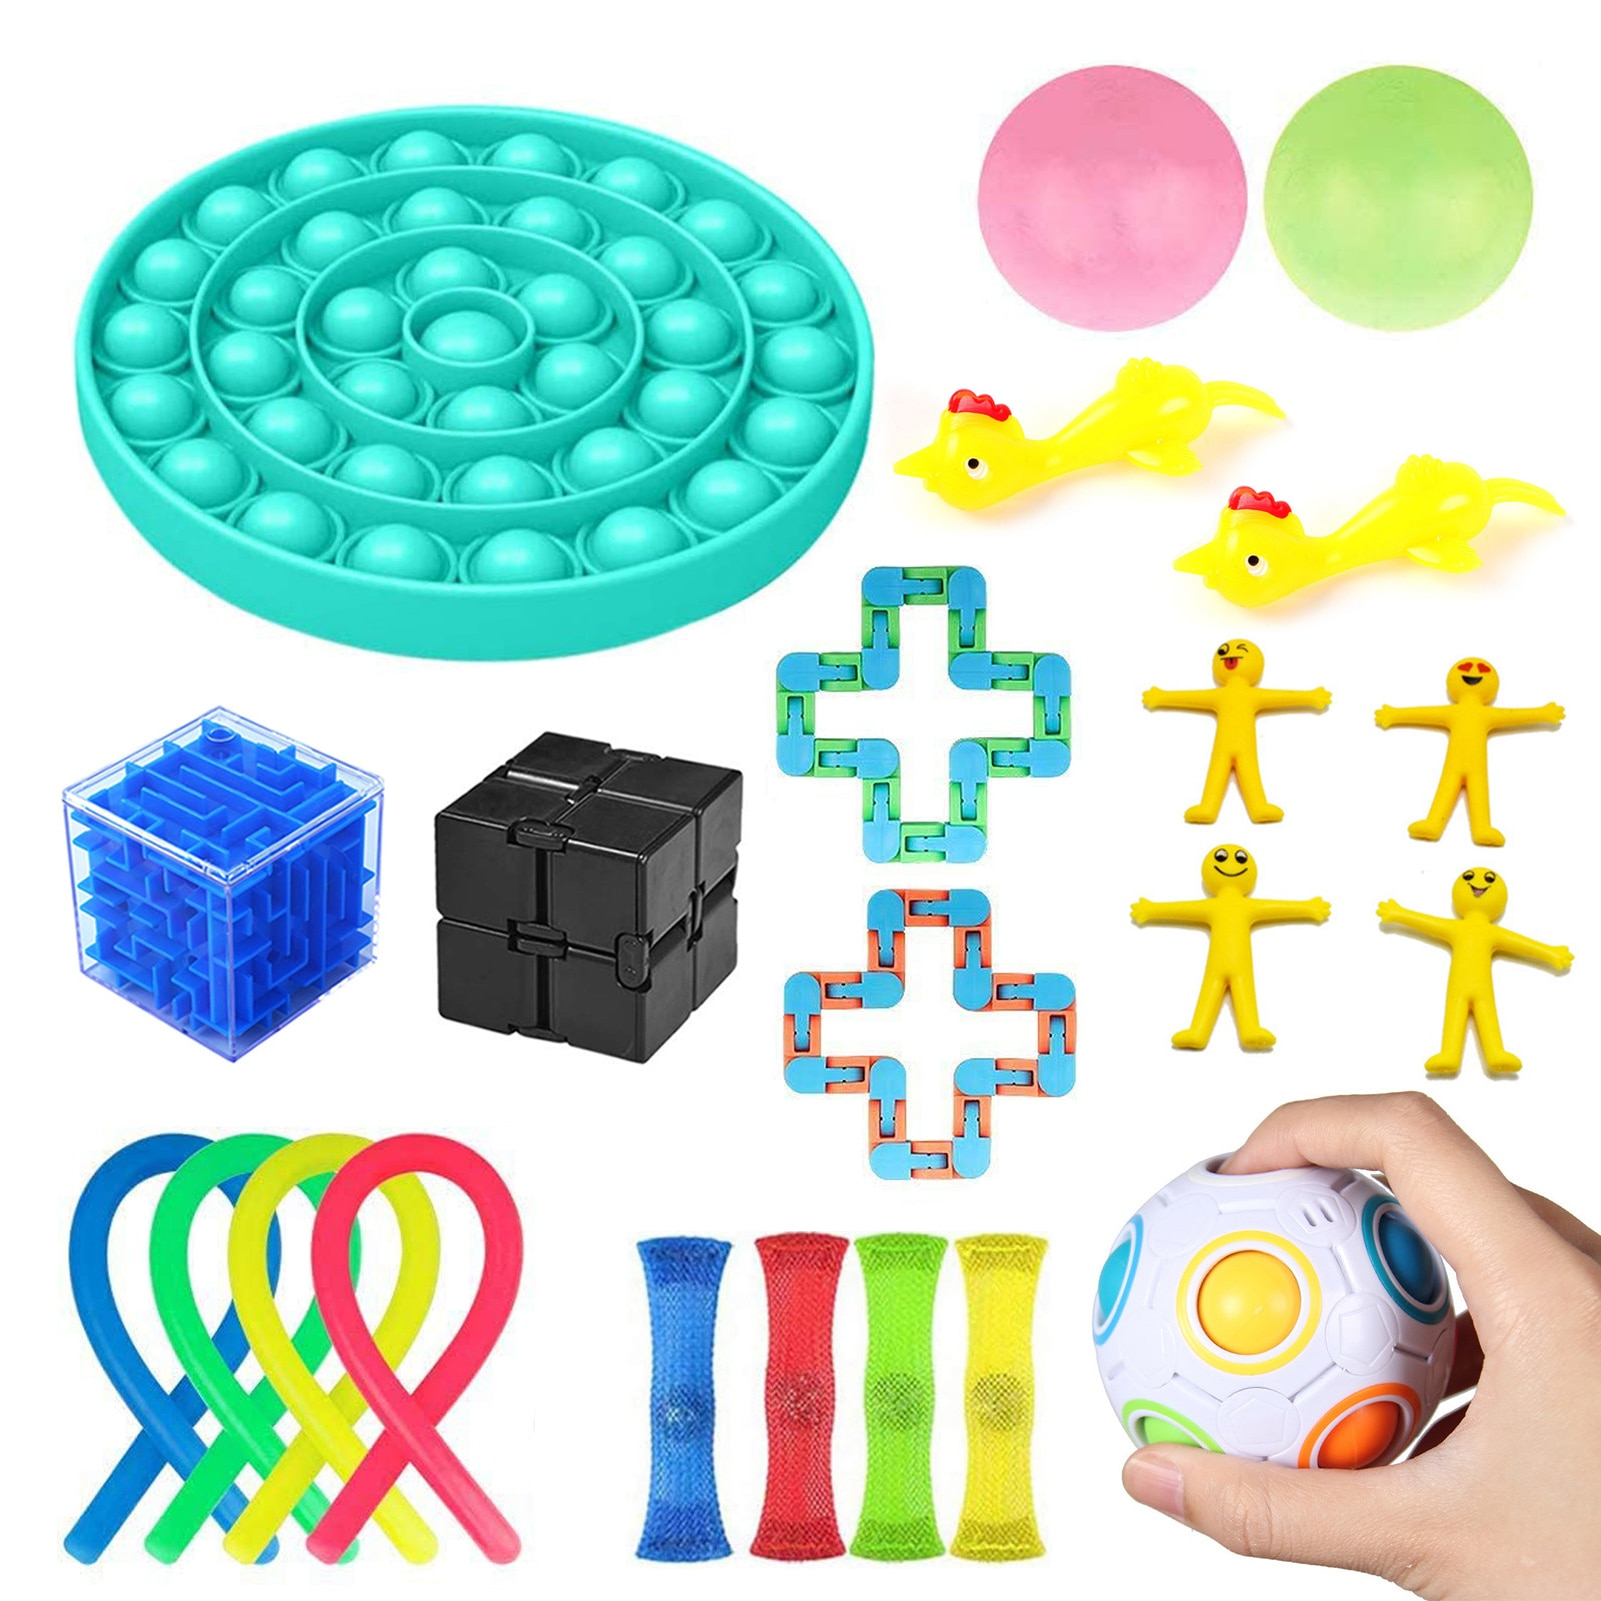 Decompression Sensory Fidget Math Toys Sensory Toy Set Stress Reliever Calming Hand Toys For Kids Adults